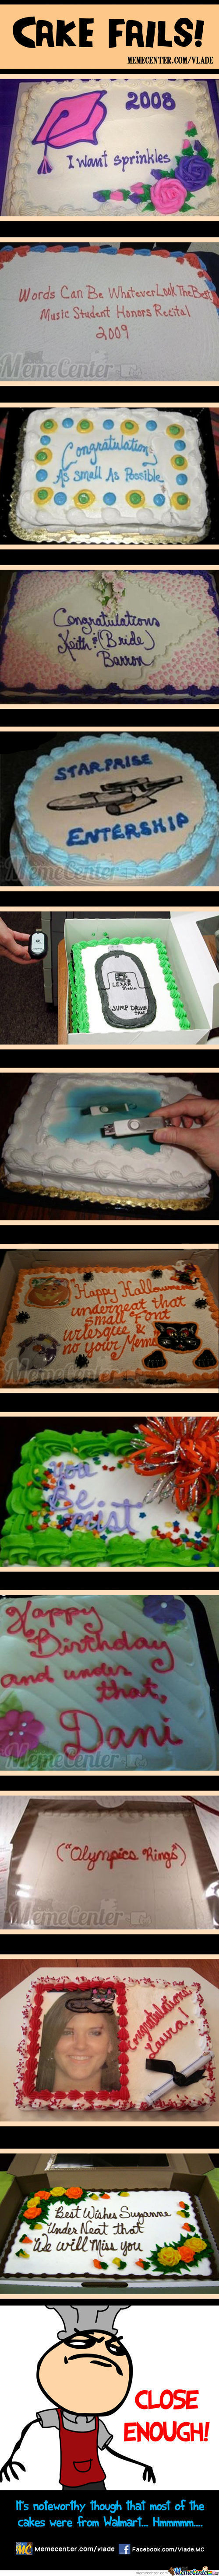 Cake Memes Best Collection Of Funny Cake Pictures